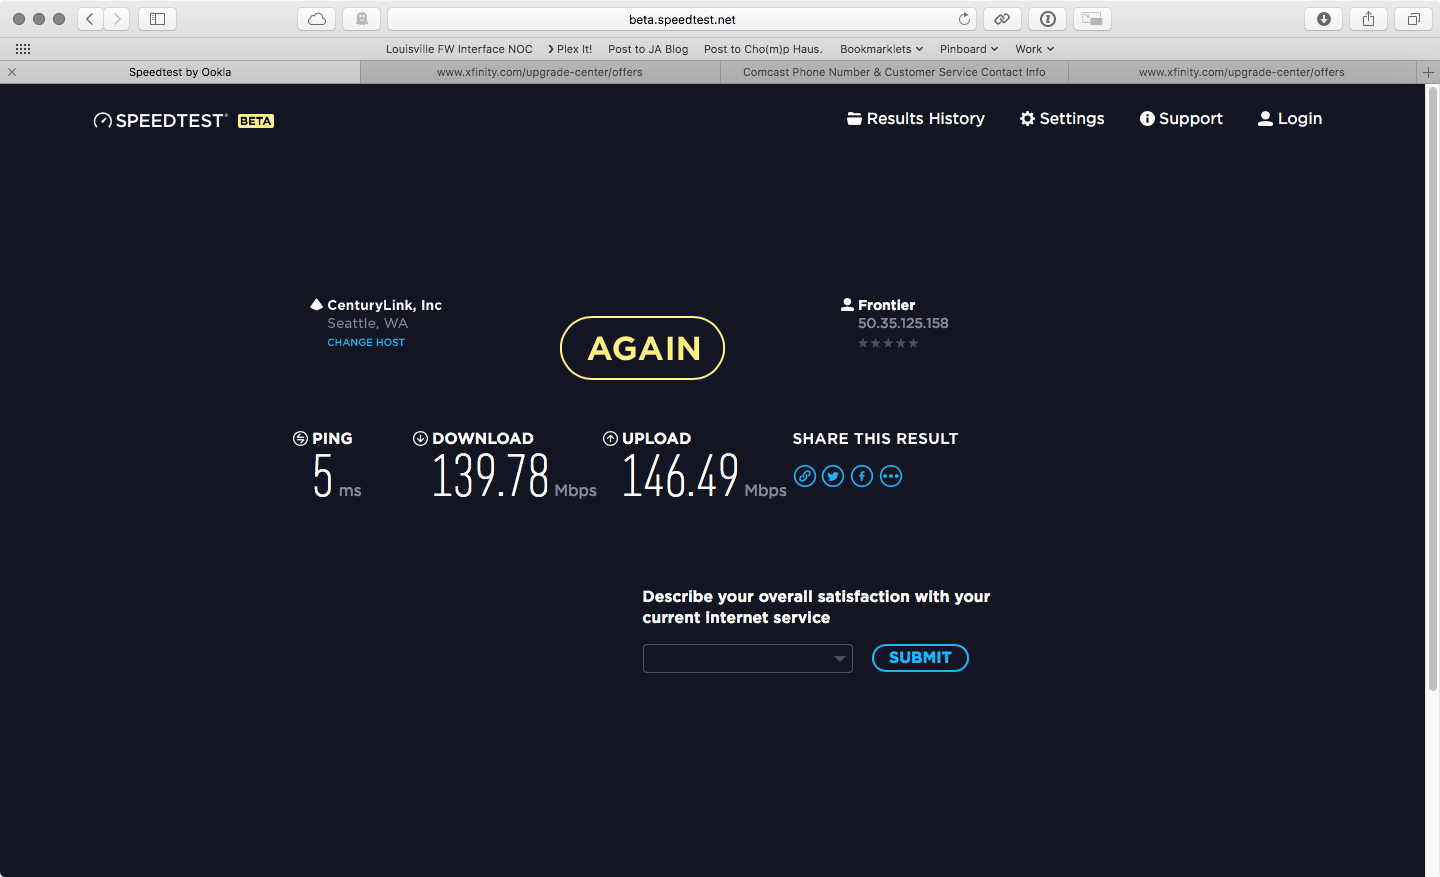 Speed Test Frontier >> Speed Test Inaccurate Discussion Topics Eero Community